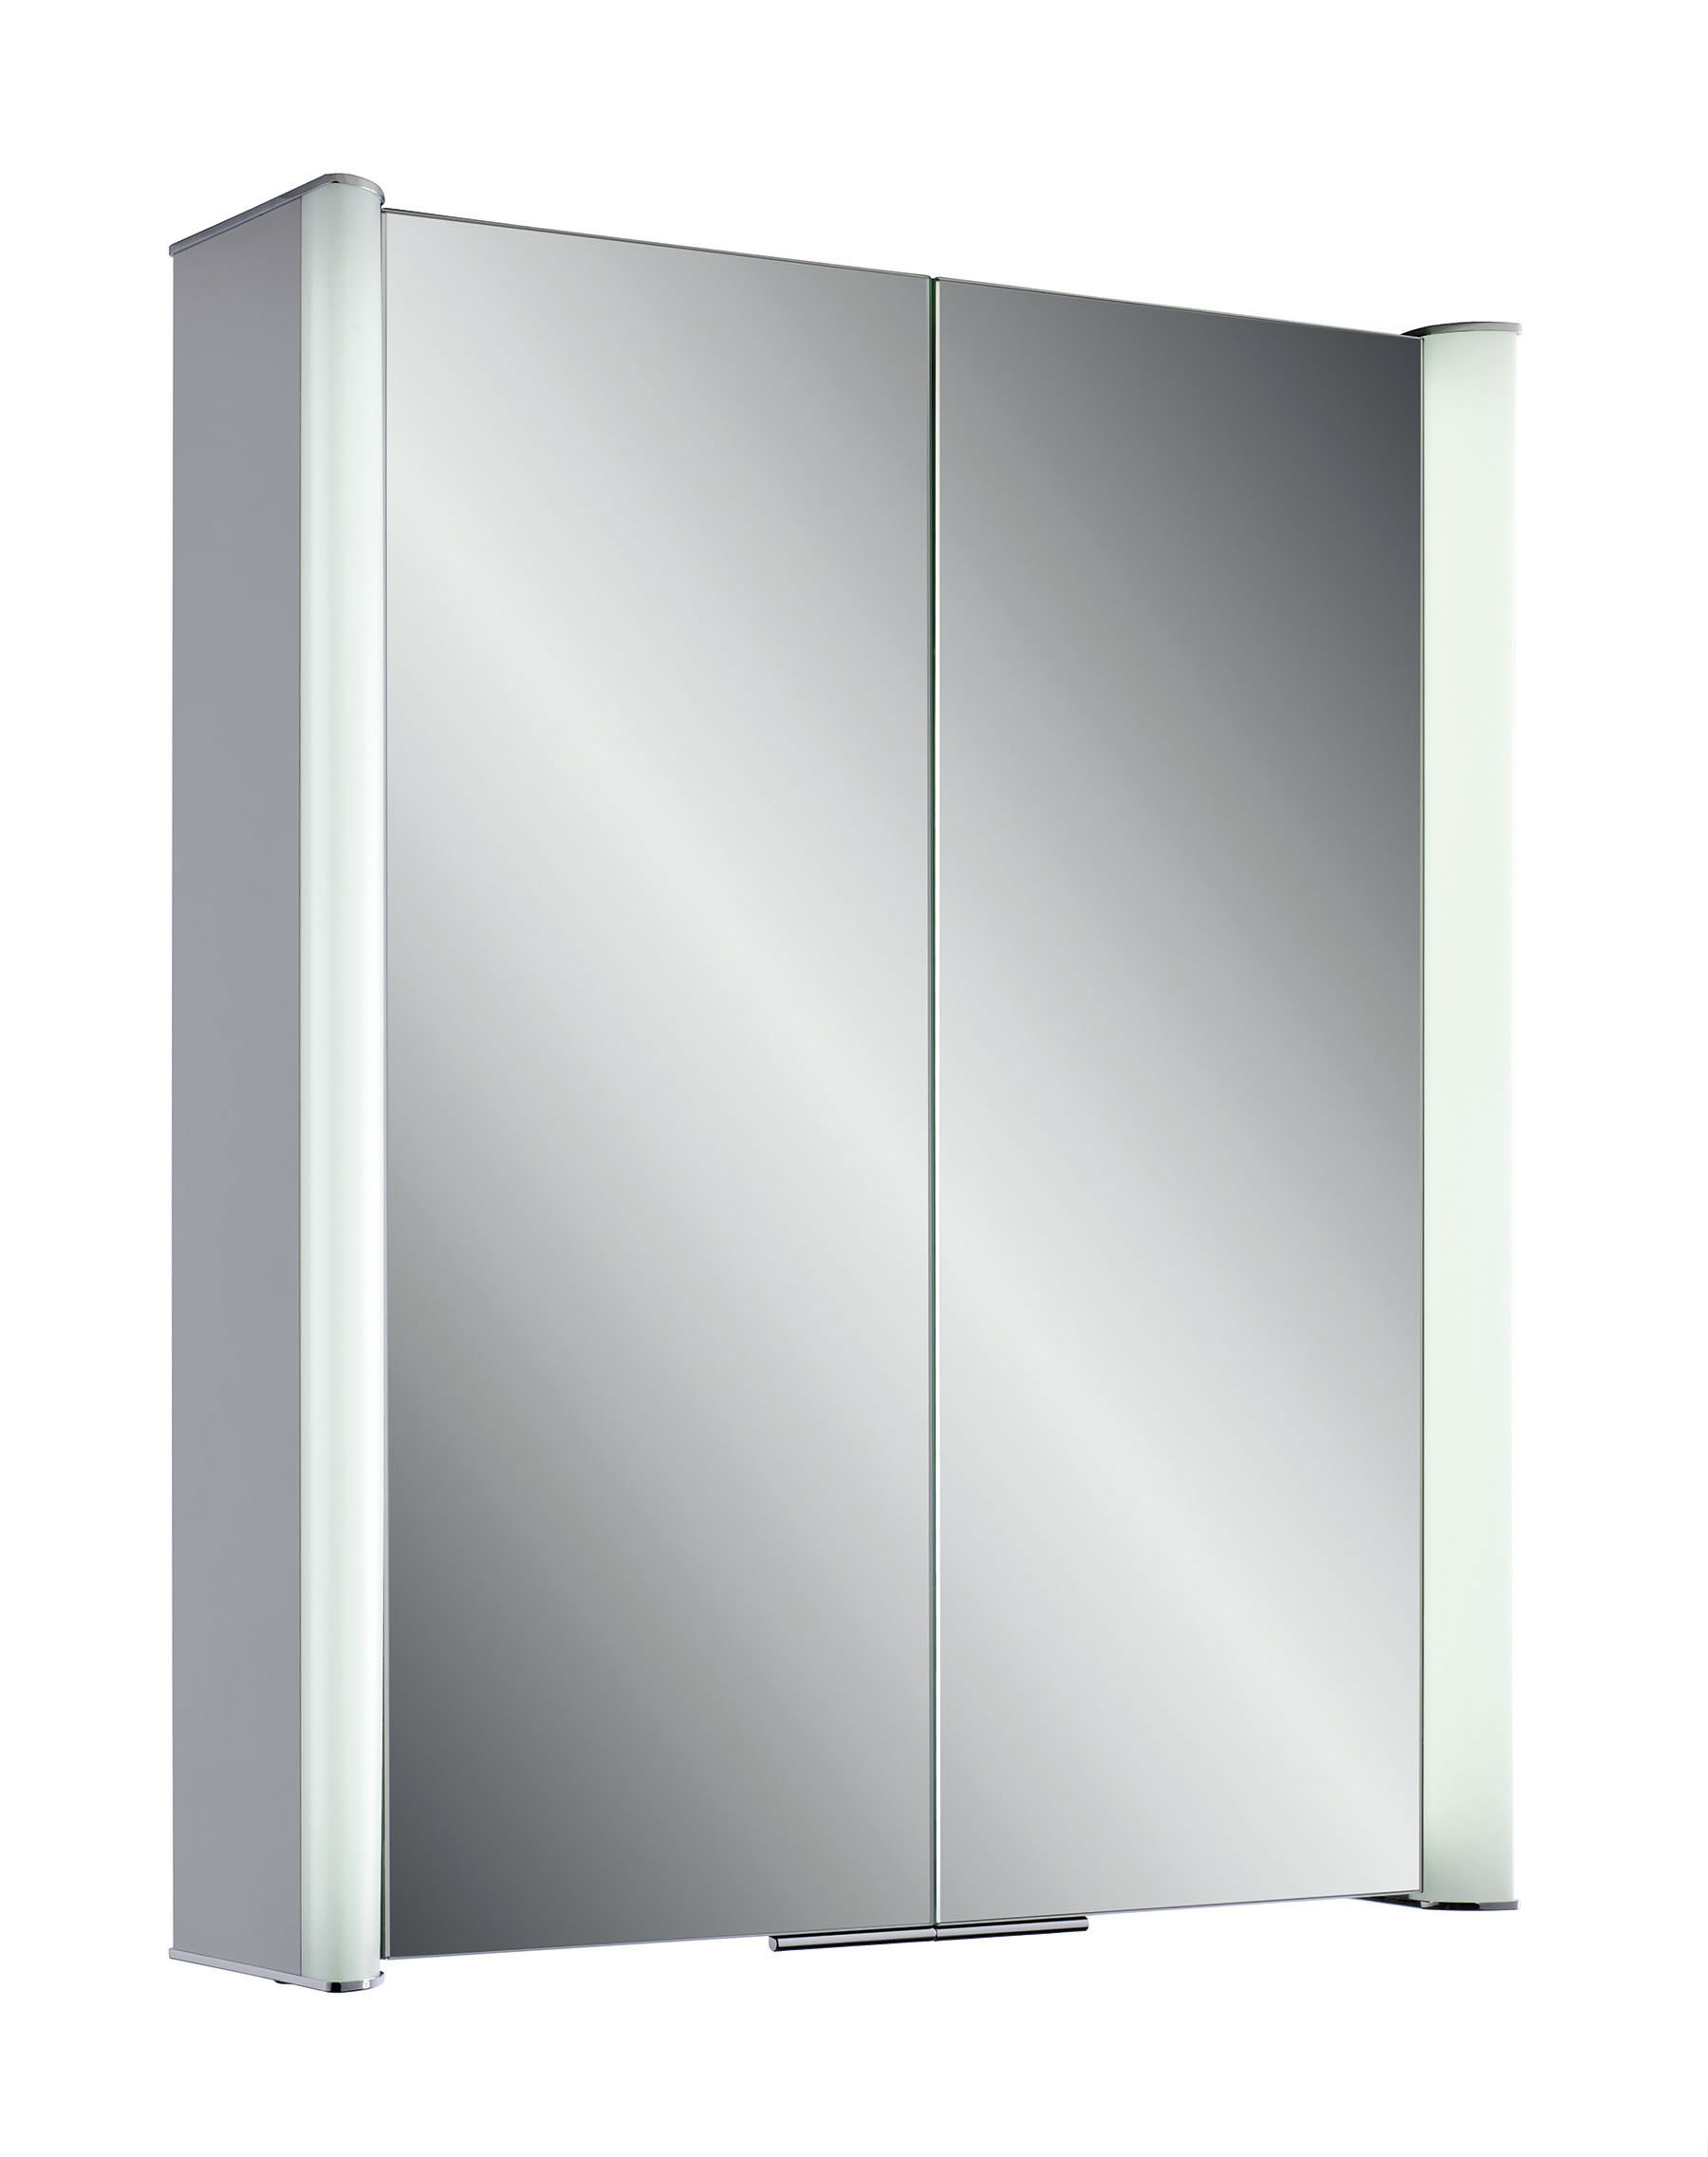 IONA 620mm LED ALUMINIUM 2 DOOR CABINET